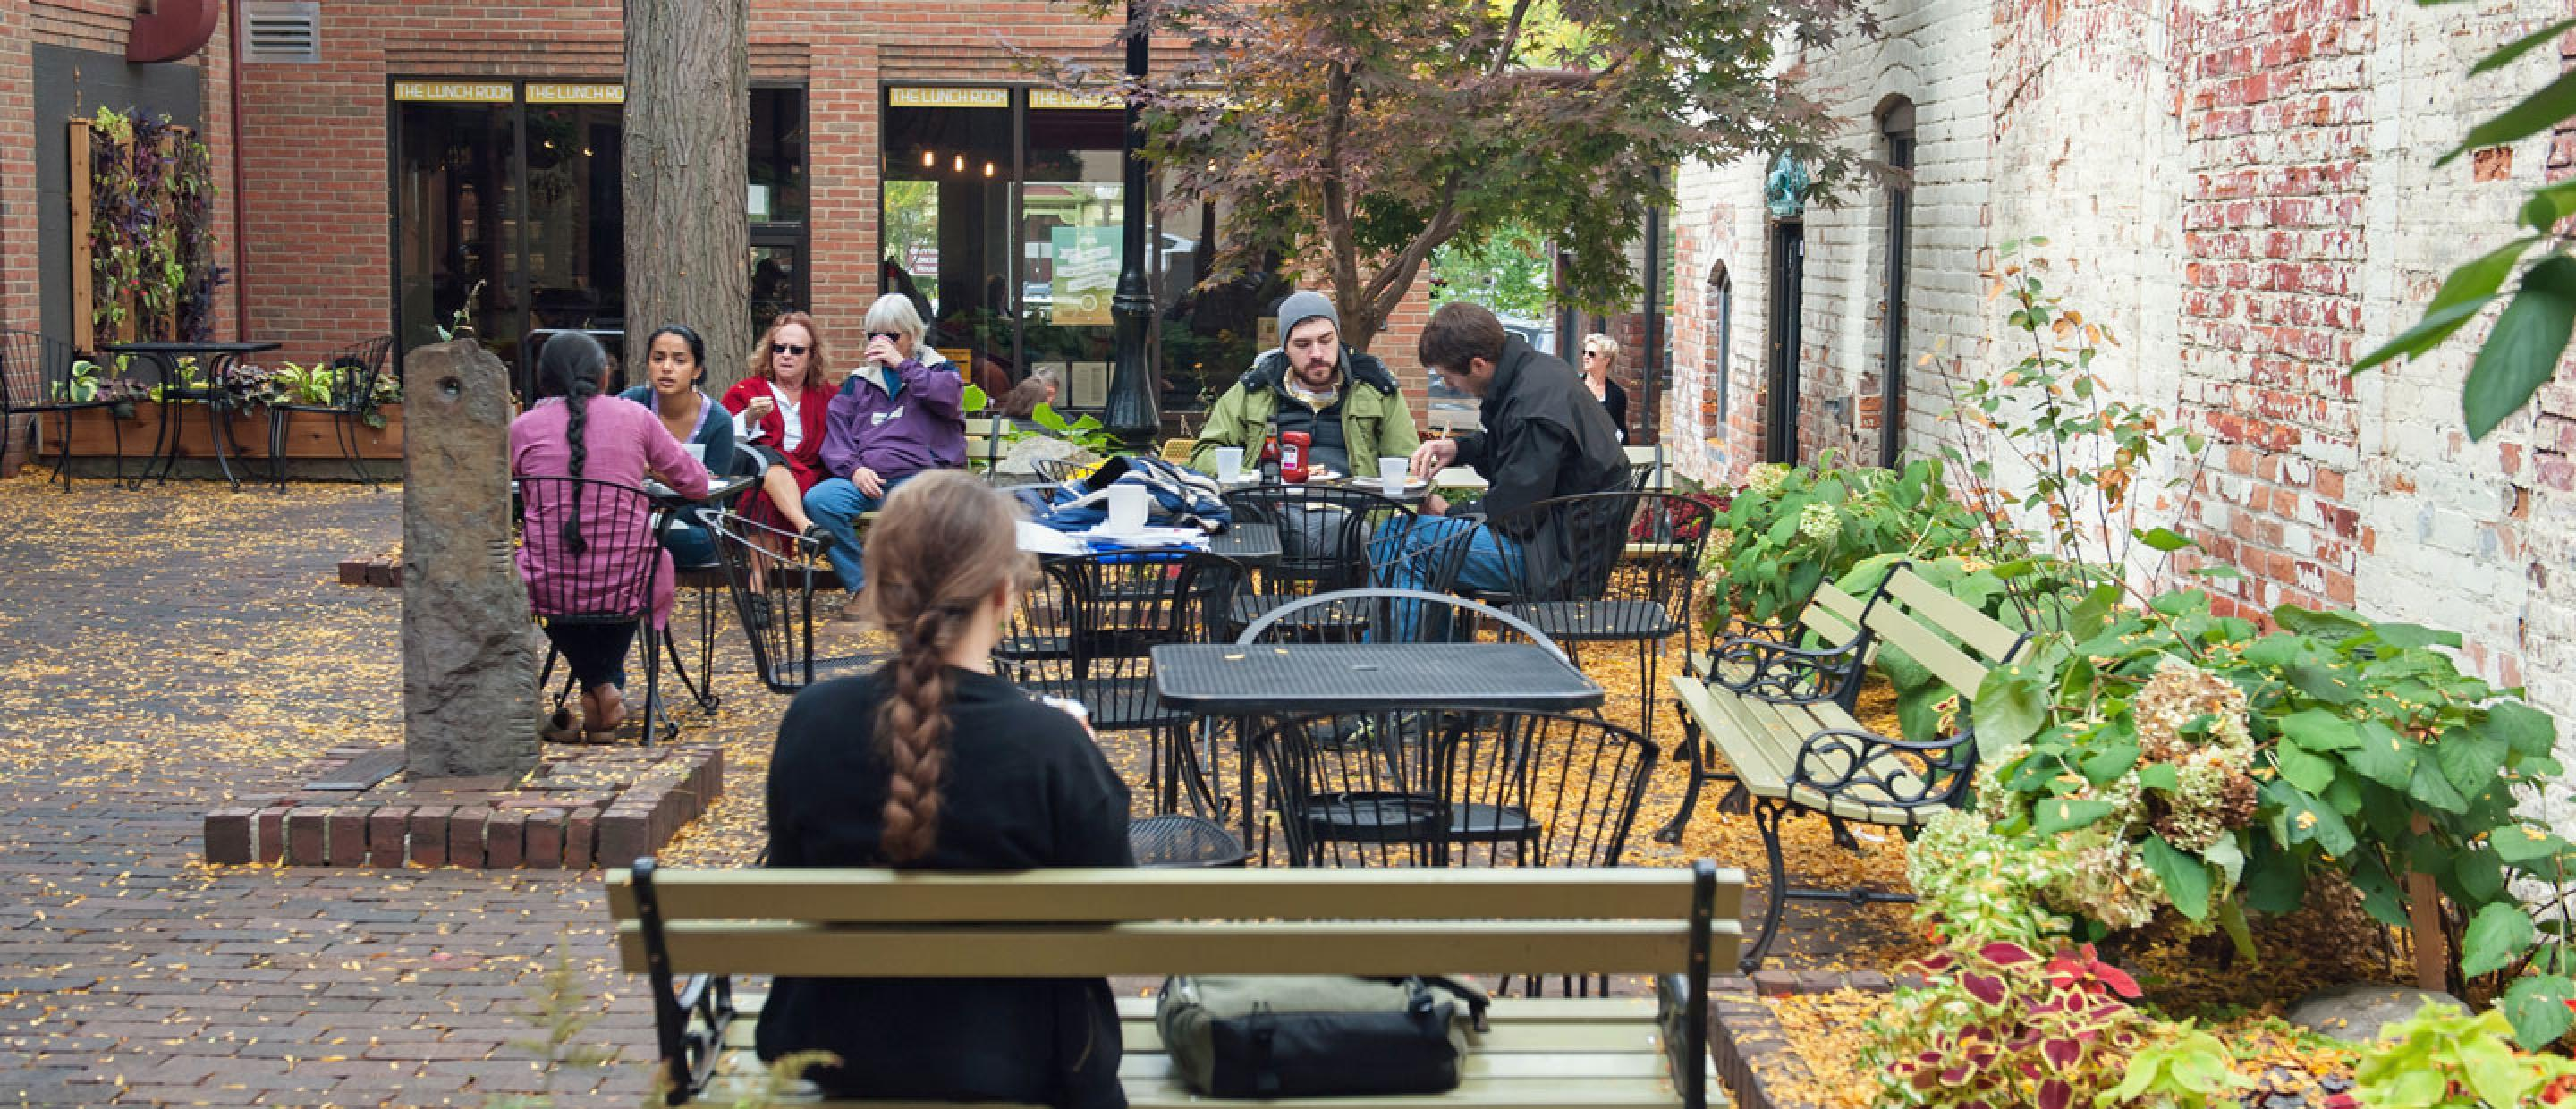 Diners in the courtyard at the Kerrytown Shops in Ann Arbor